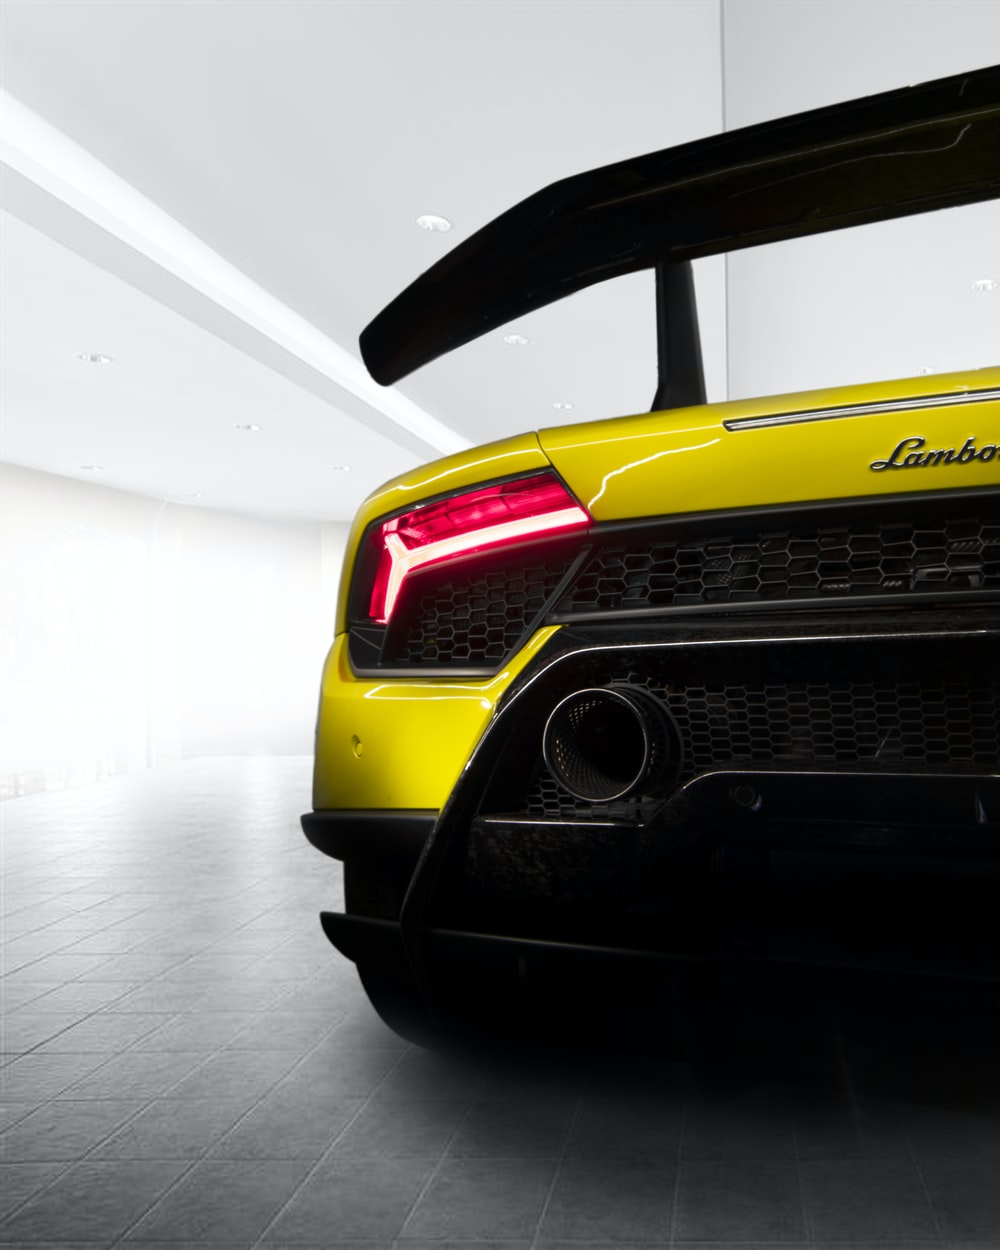 yellow and black Lamborghini vehicle screenshot